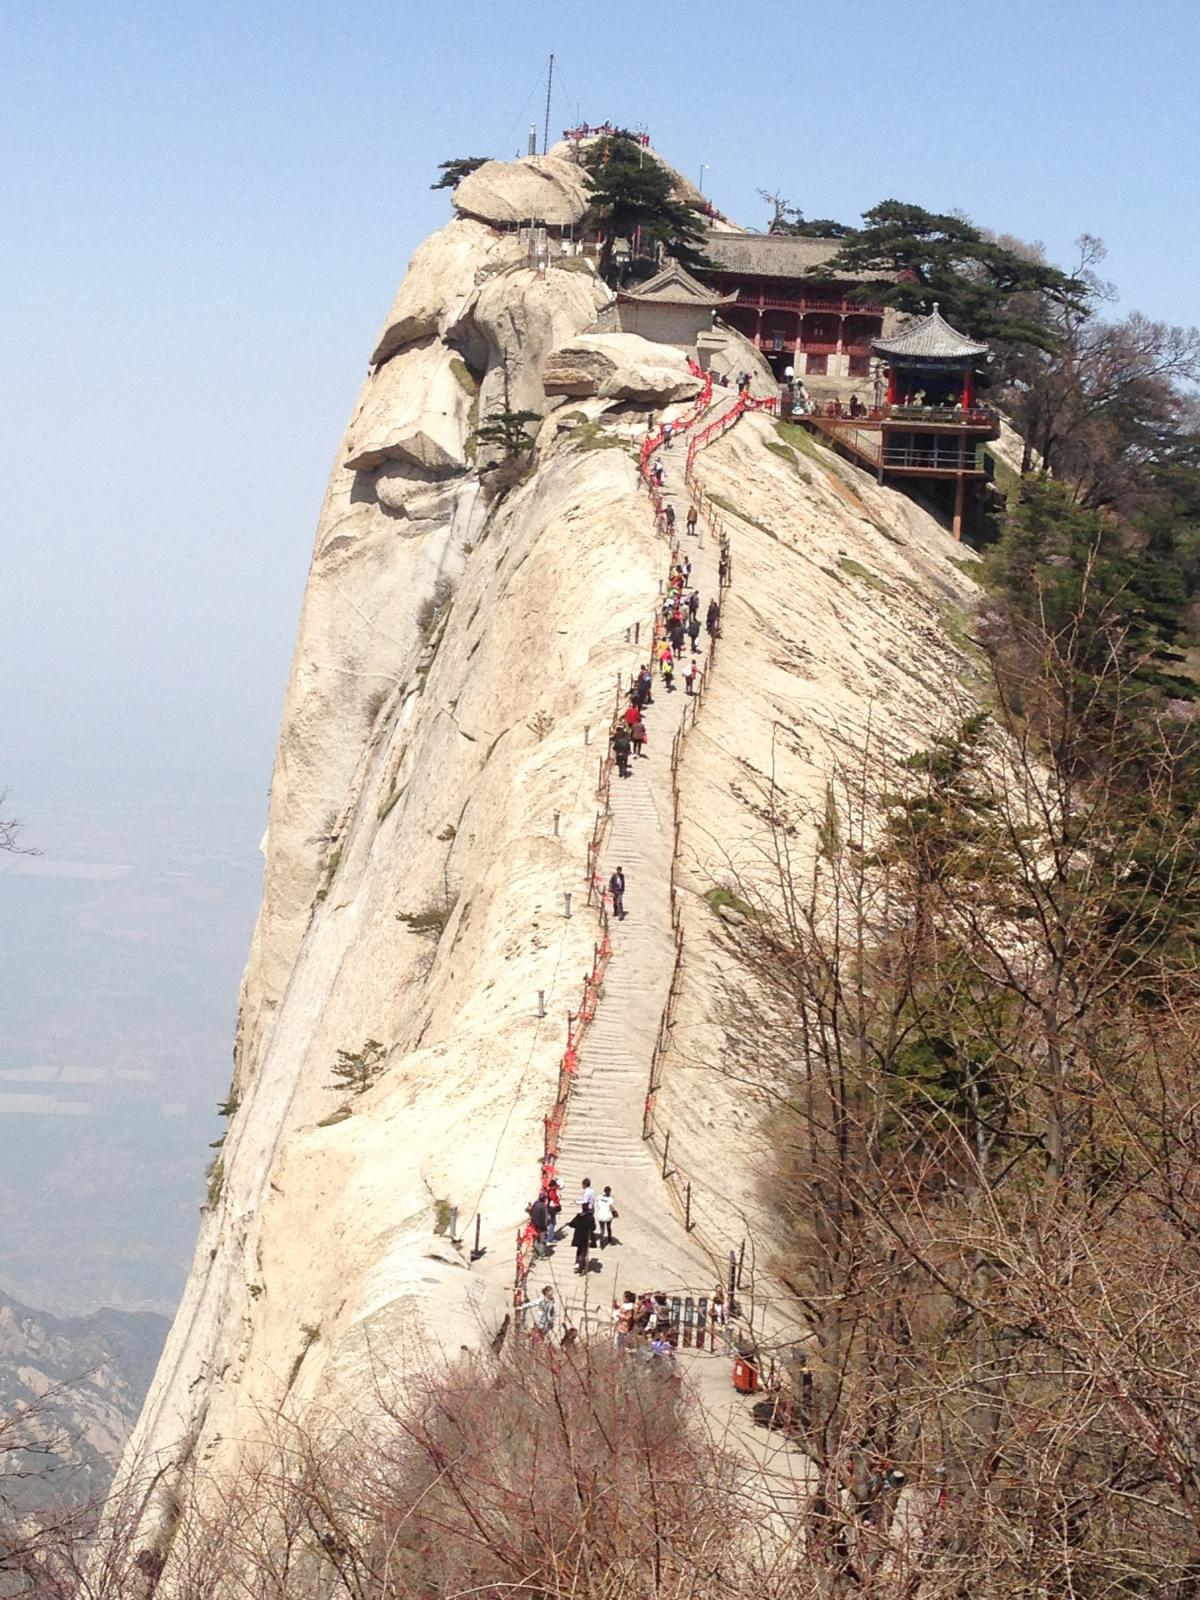 You can get a cup of tea at Cuiyun Palace on the west peak of Mount Hua.